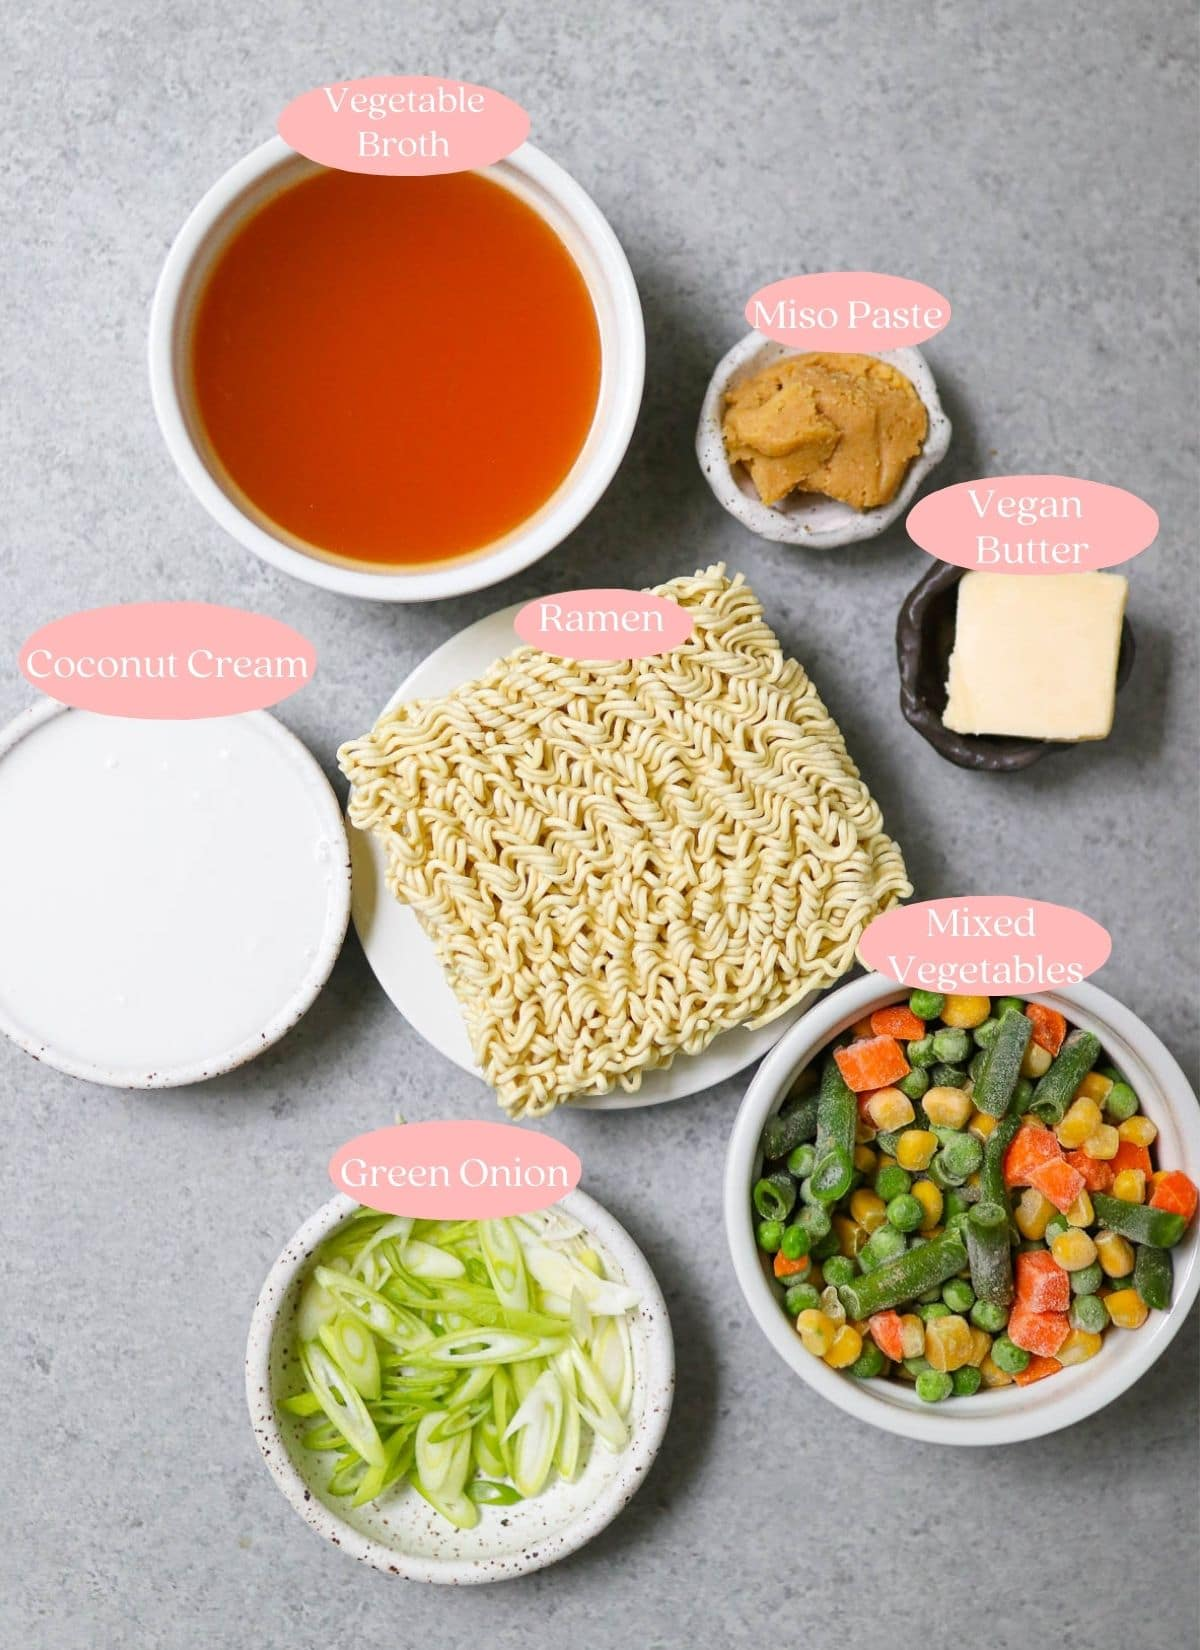 photo of ingredients with labels